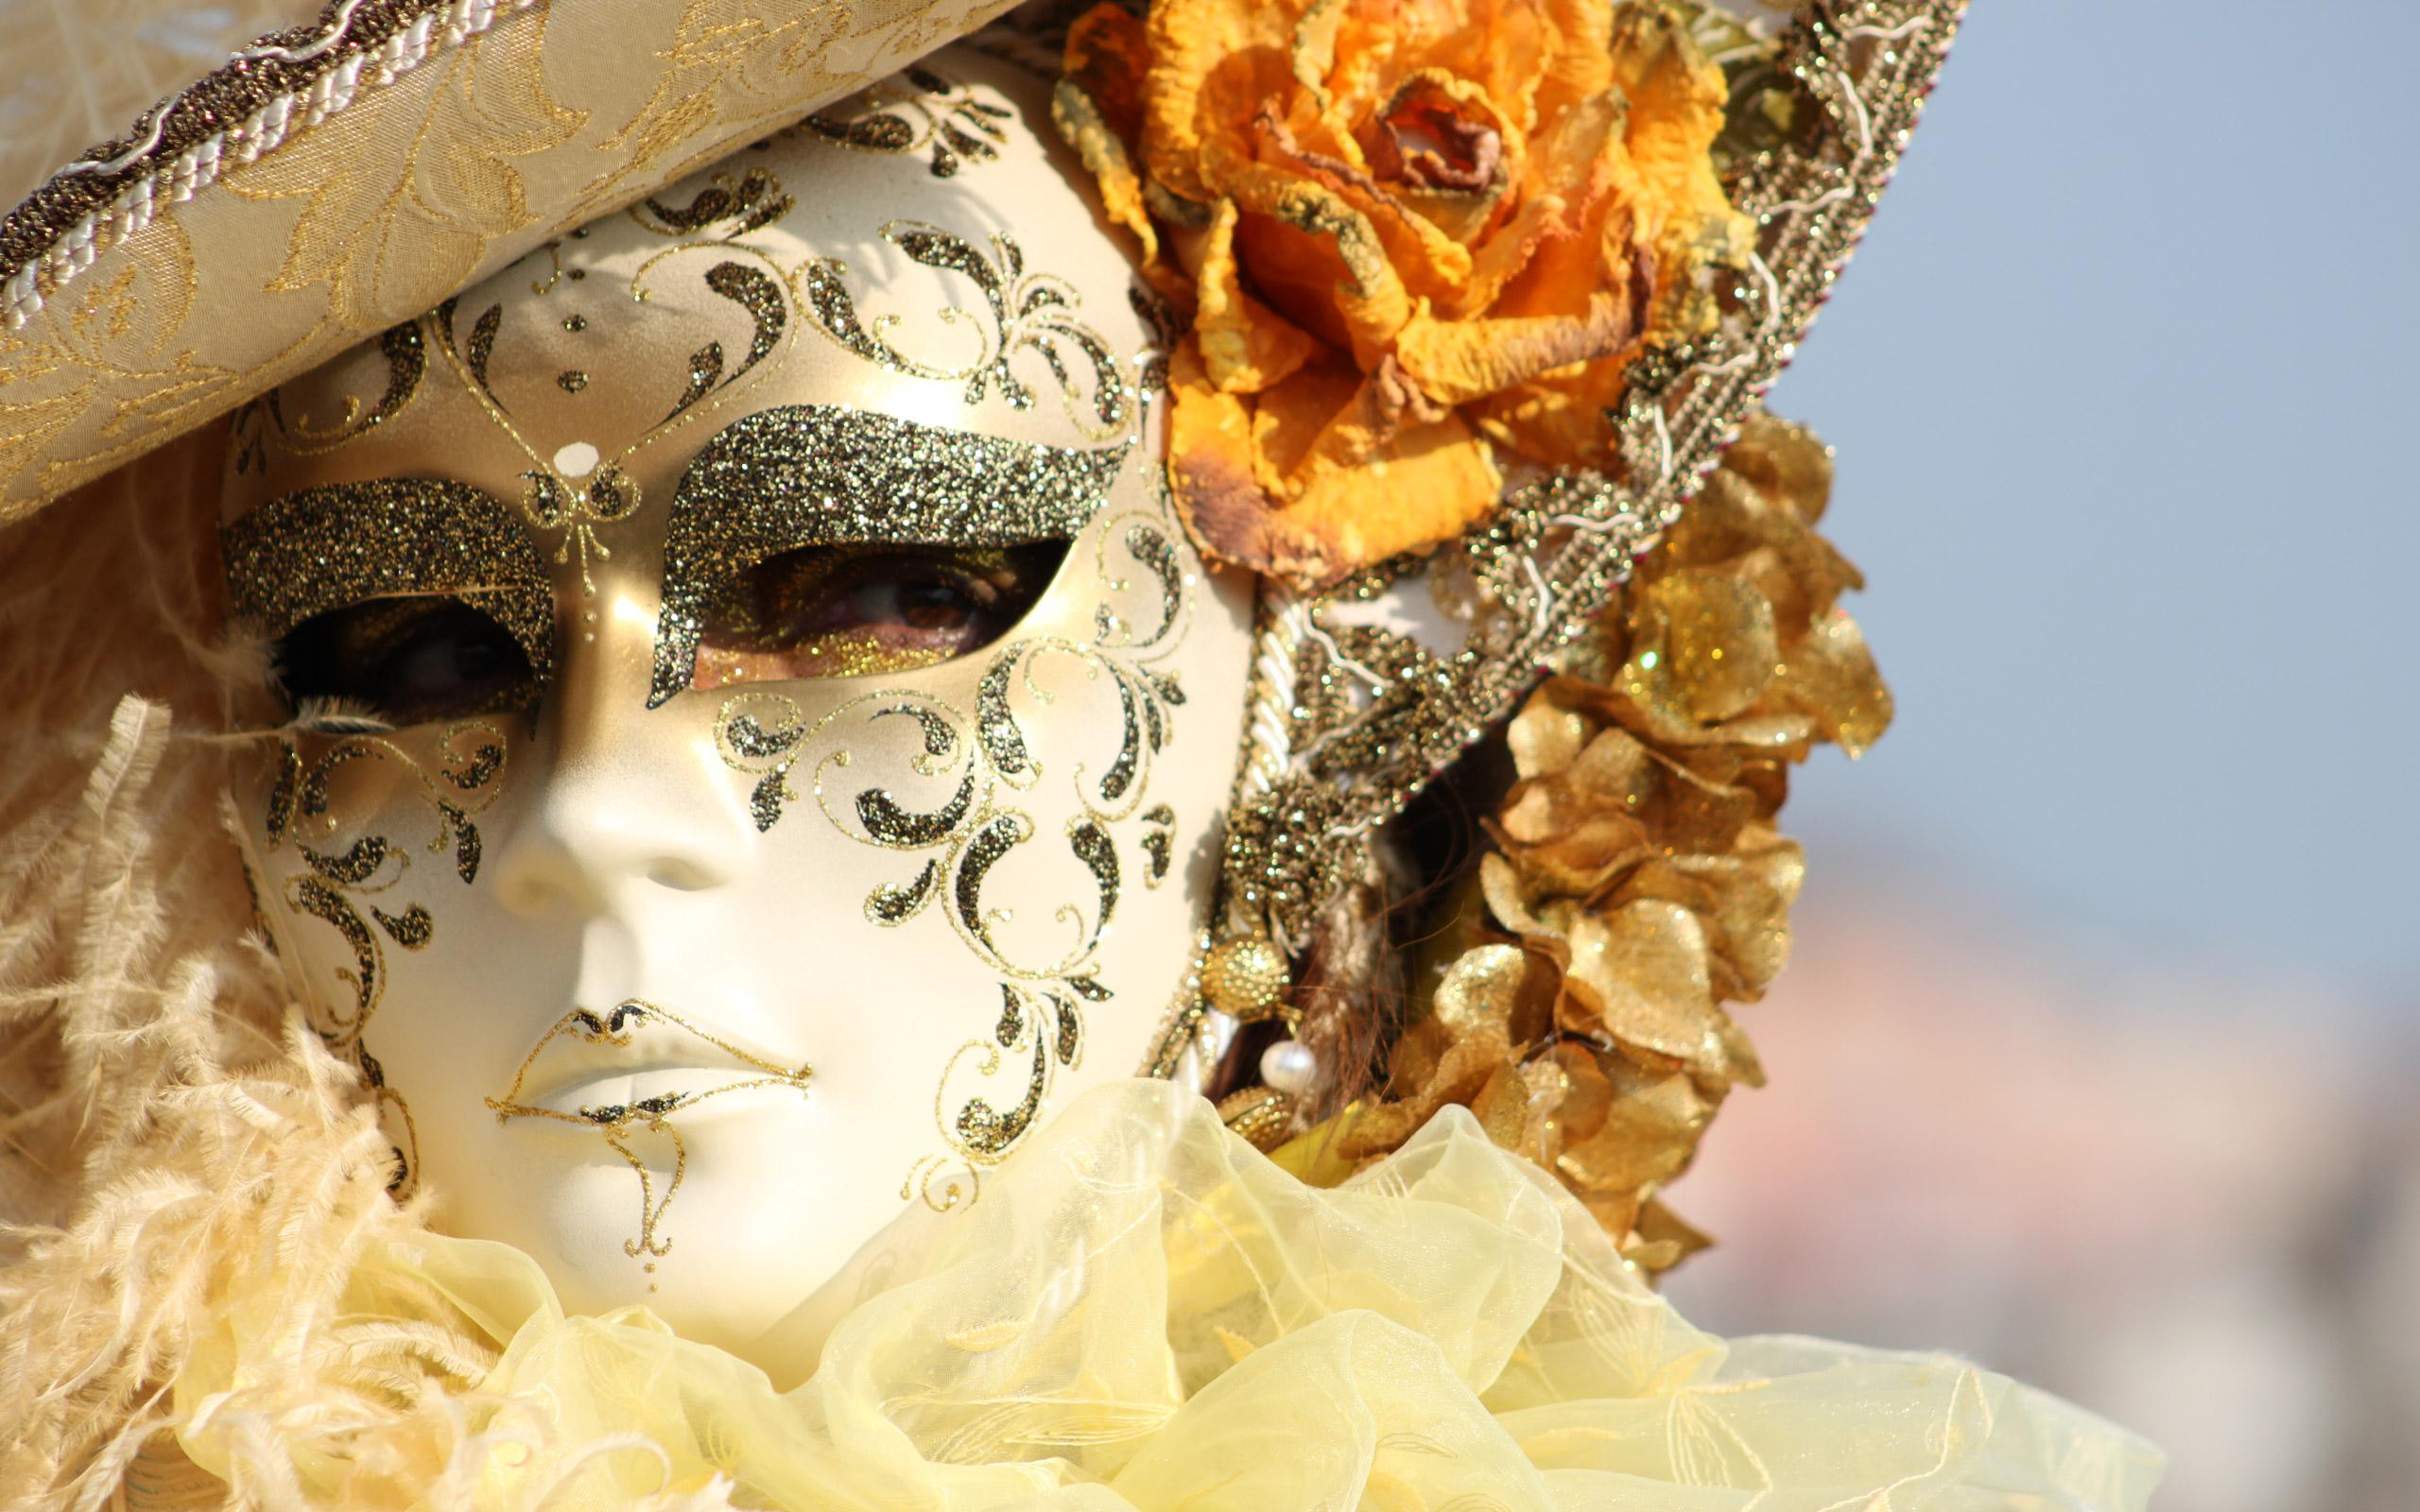 Carnival Of Venice Wallpapers HD Backgrounds, Image, Pics, Photos